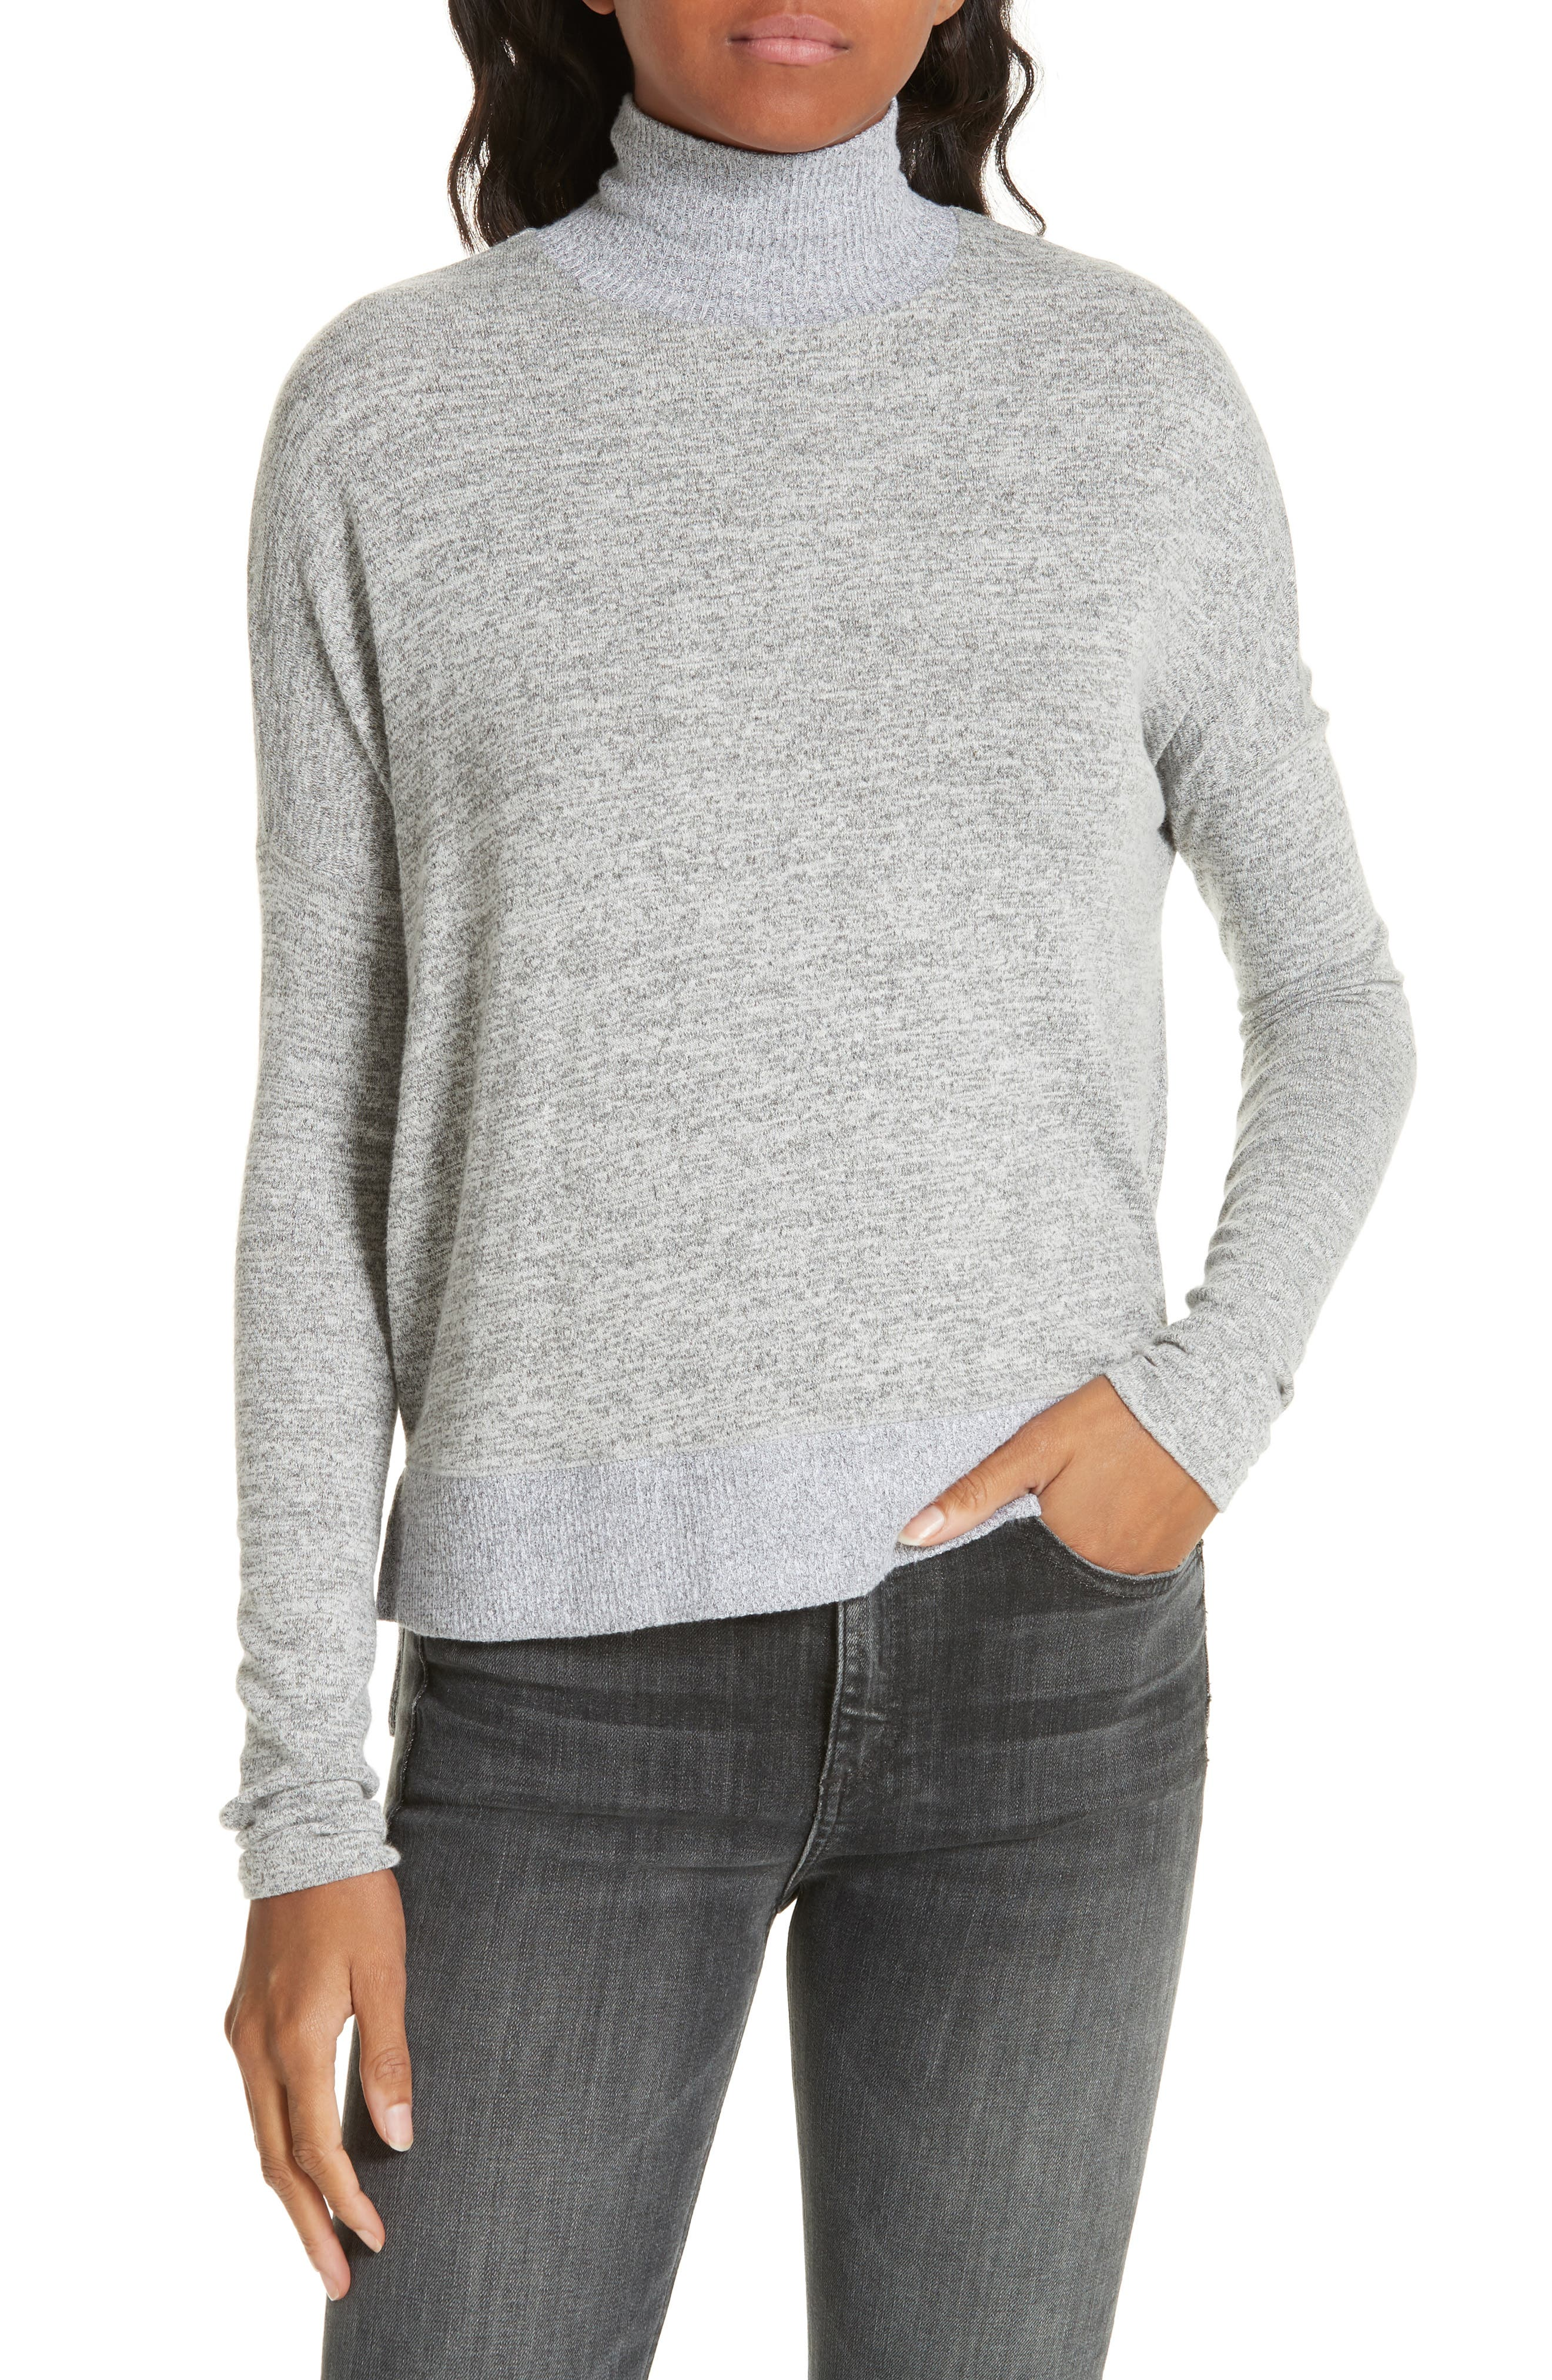 Bowery Dropped-Shoulder Button-Back Turtleneck Sweater in Light Heather Grey